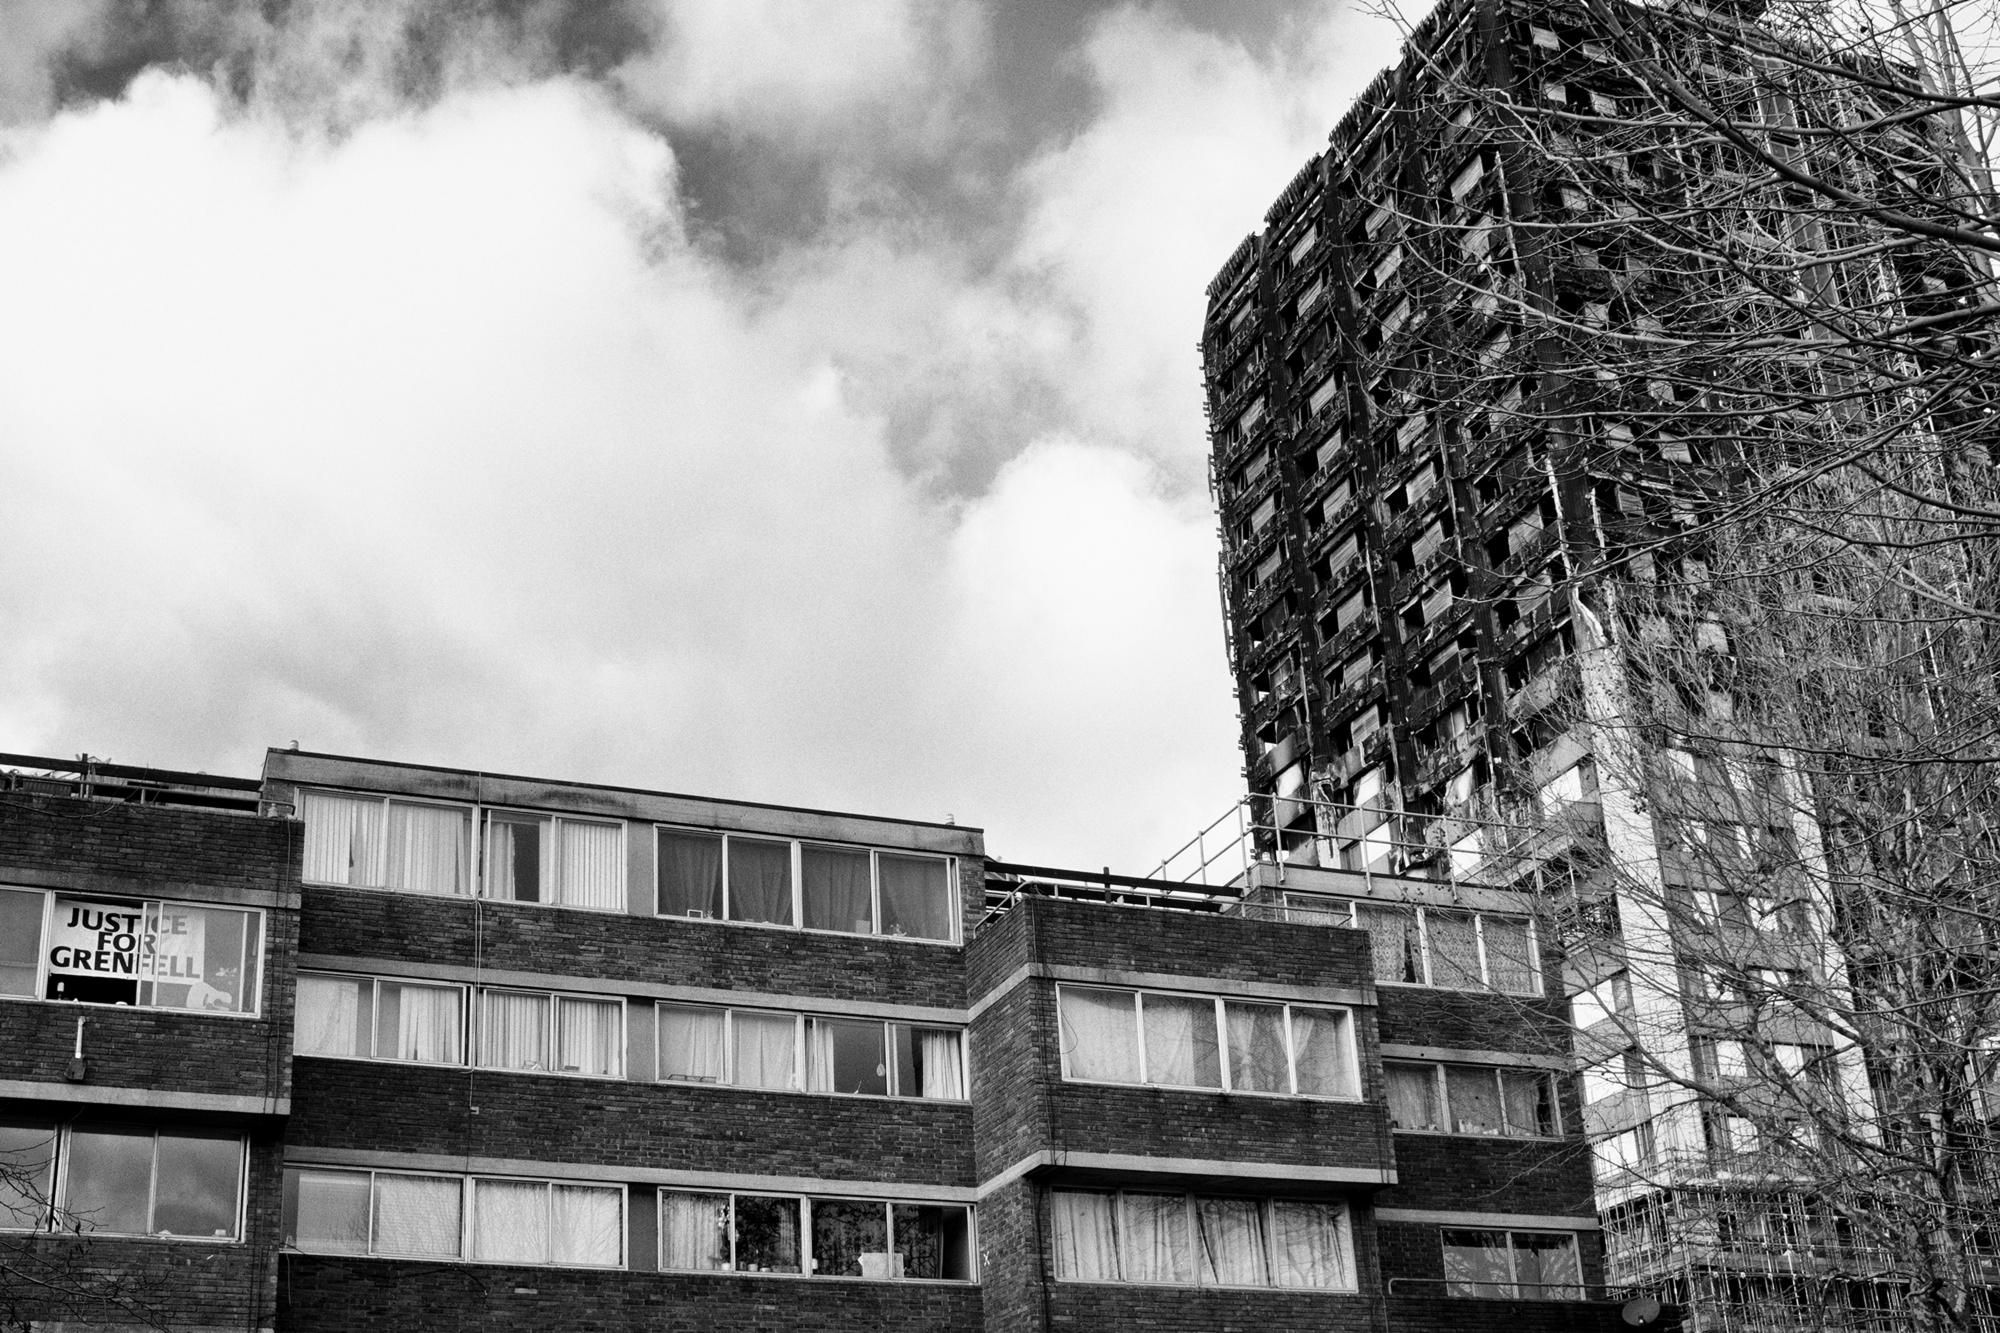 How architects can prevent another Grenfell